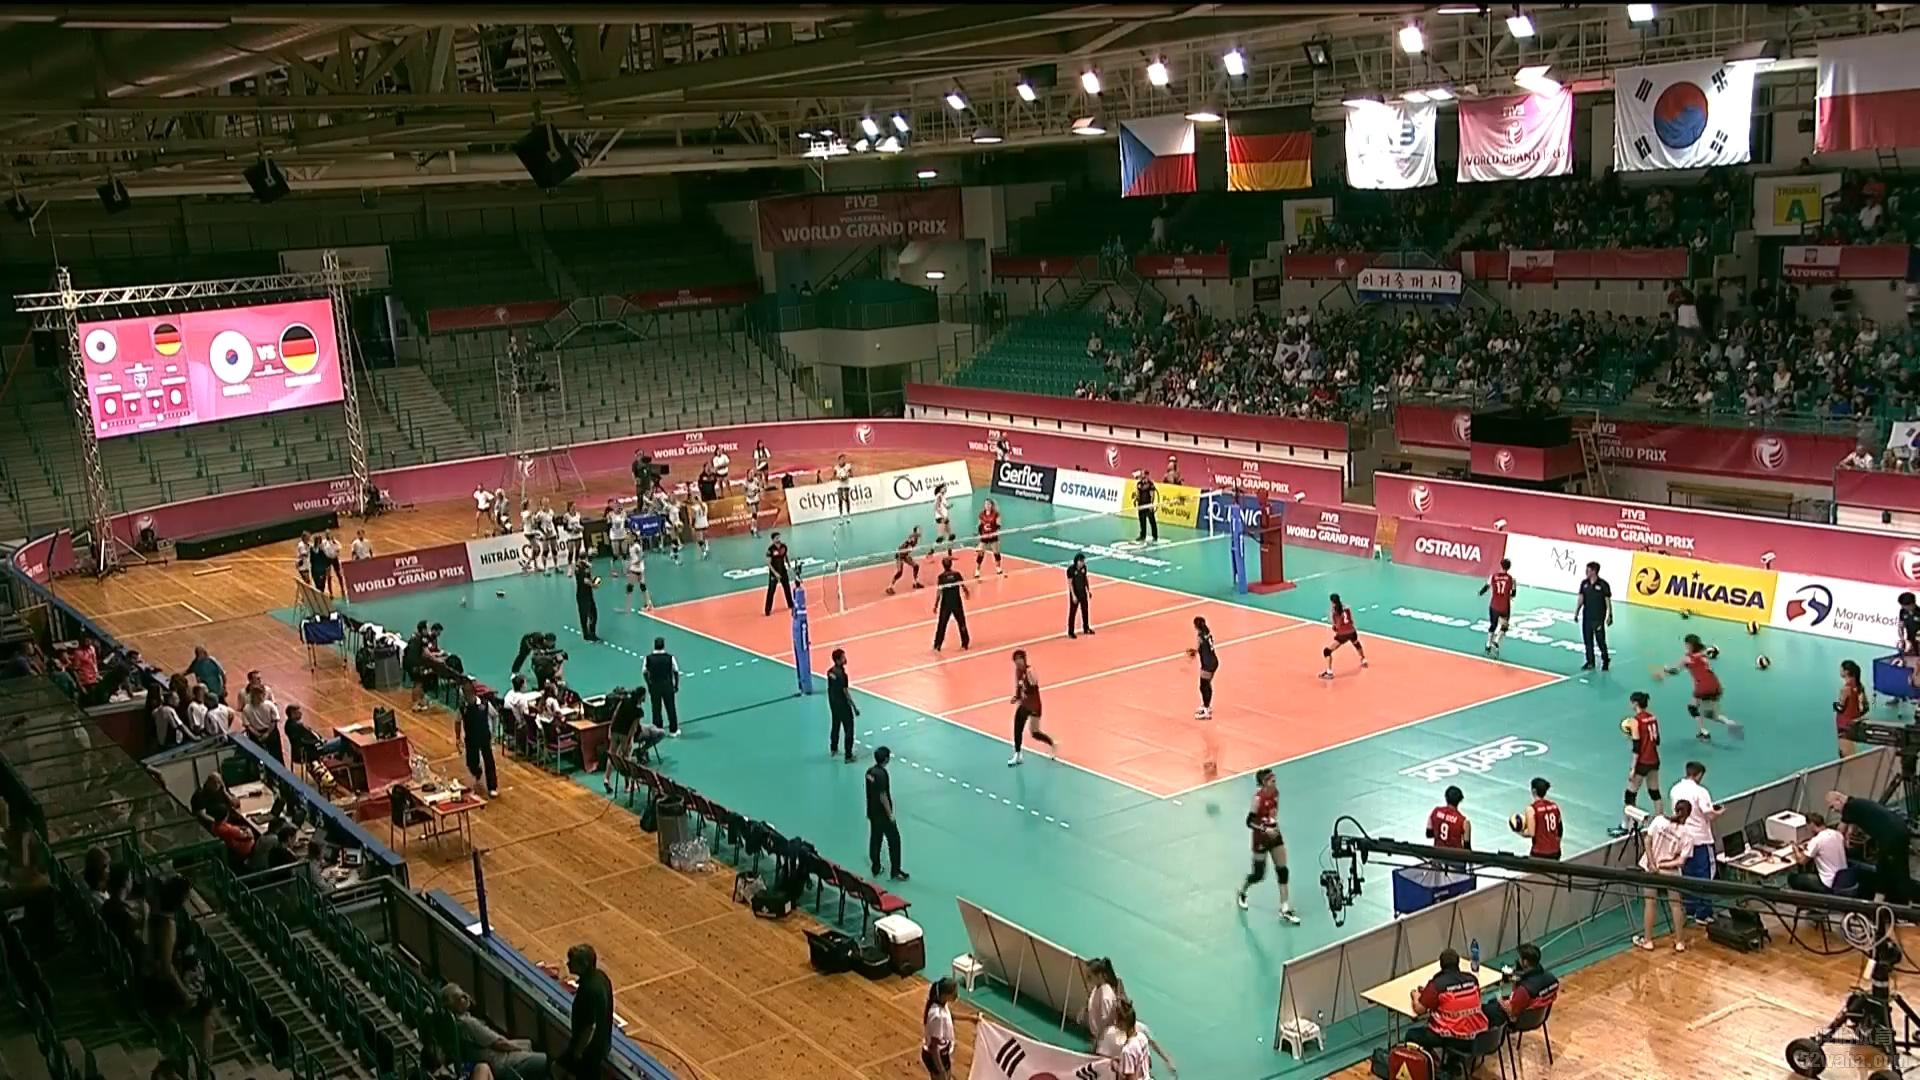 Korea v Germany(南韩VS德国) - Group 2 2017 FIVB Volleyball World Grand Prix_2017.jpg